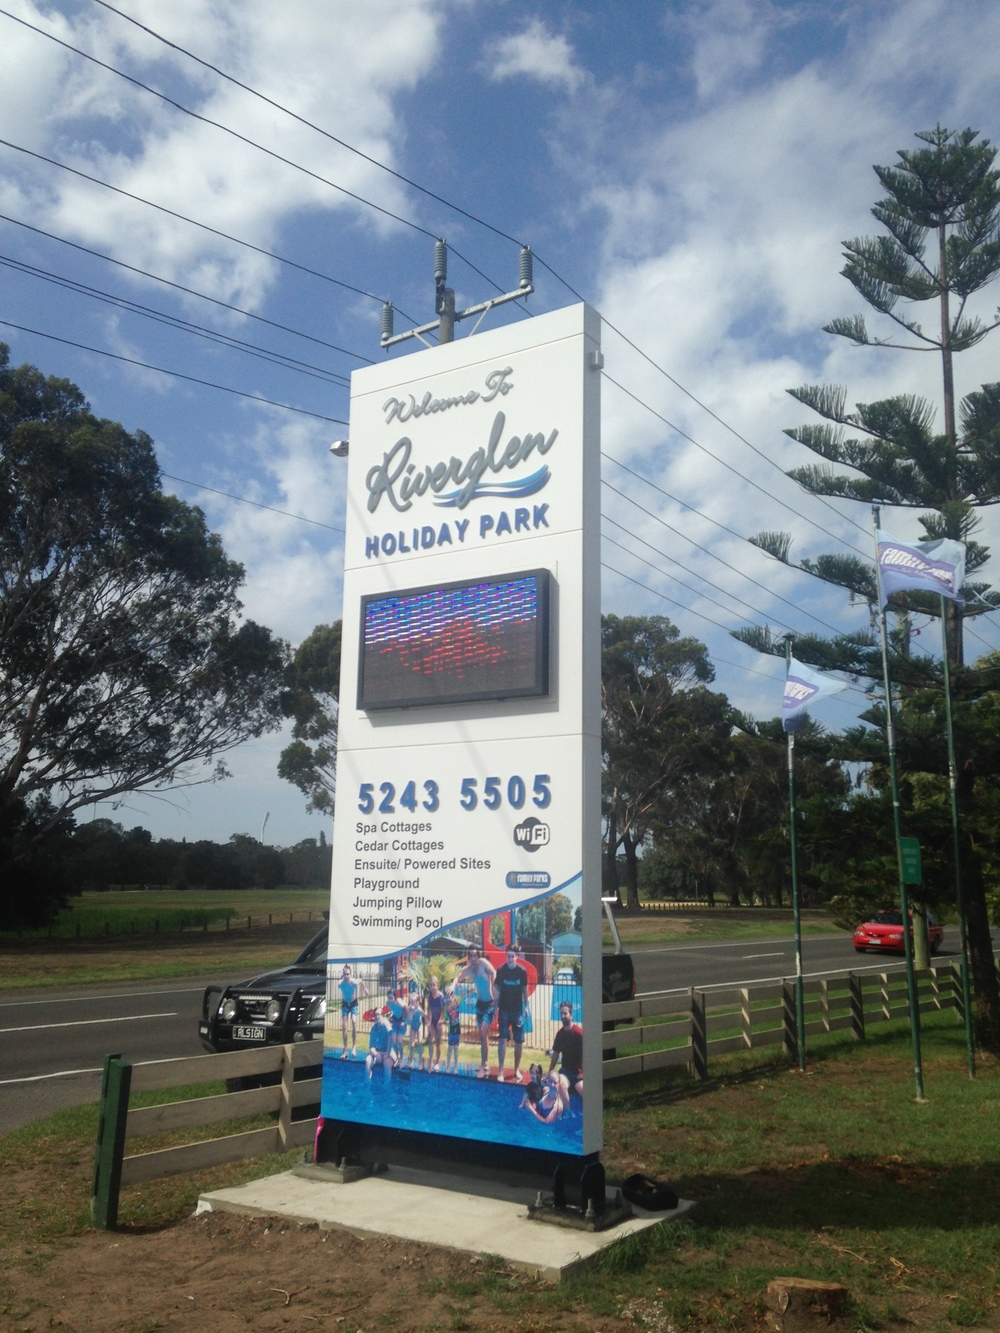 Pylon Sign Riverglen Holiday Park with LED Screen.JPG